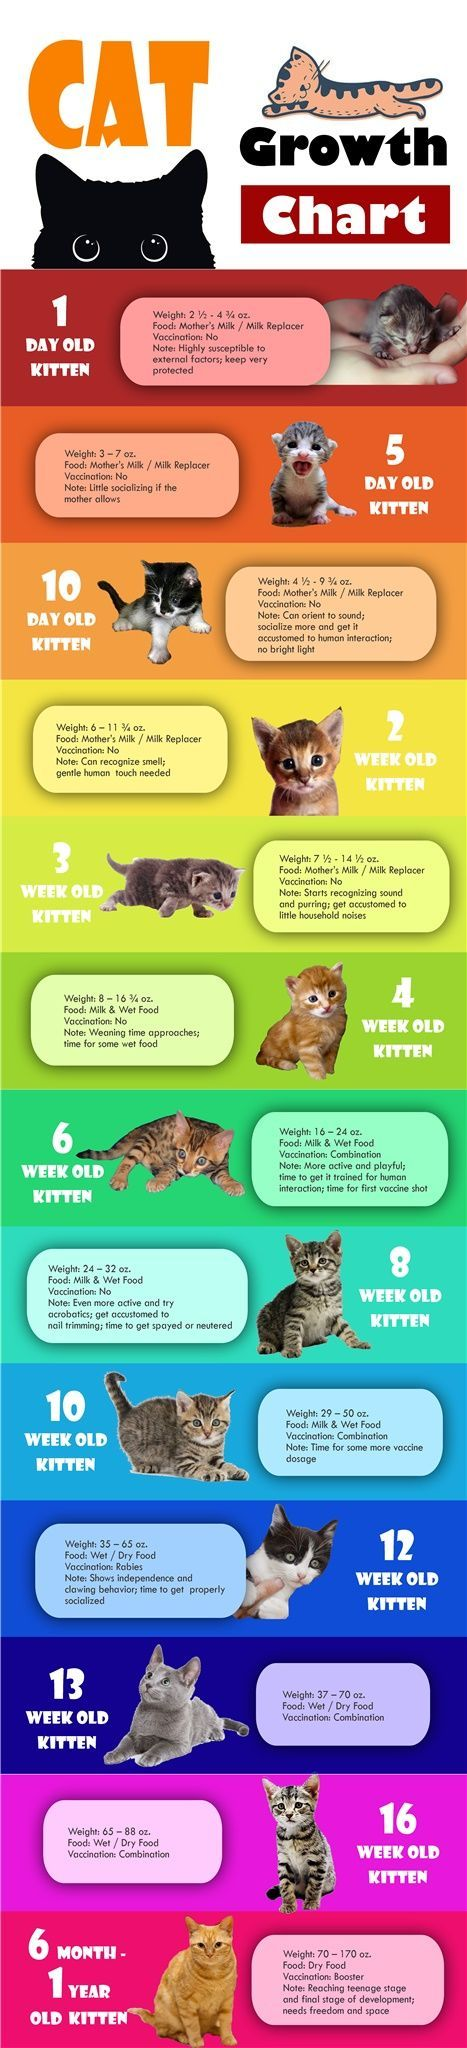 Your First Dog Understanding Your Dog S Needs Kittens Cats And Kittens Cat Infographic